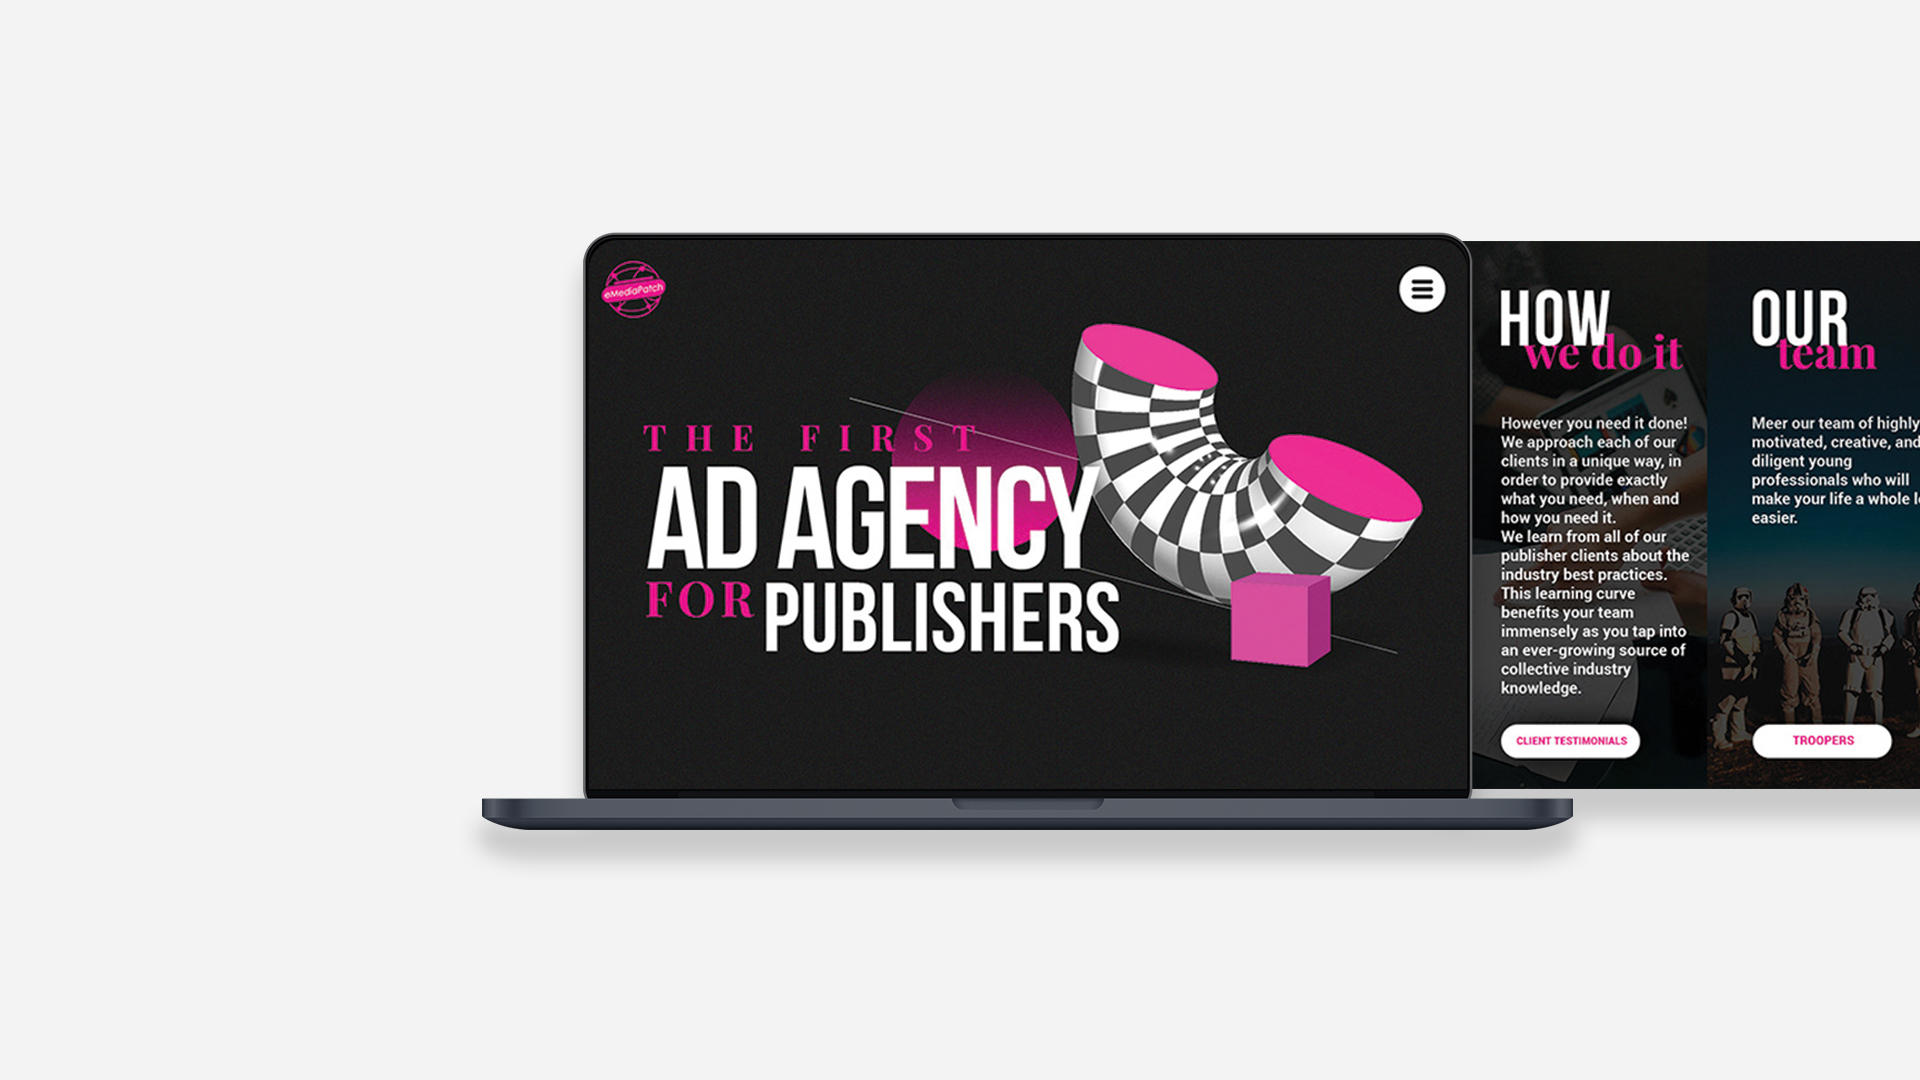 eMedia Patch - Ad agency for publishers